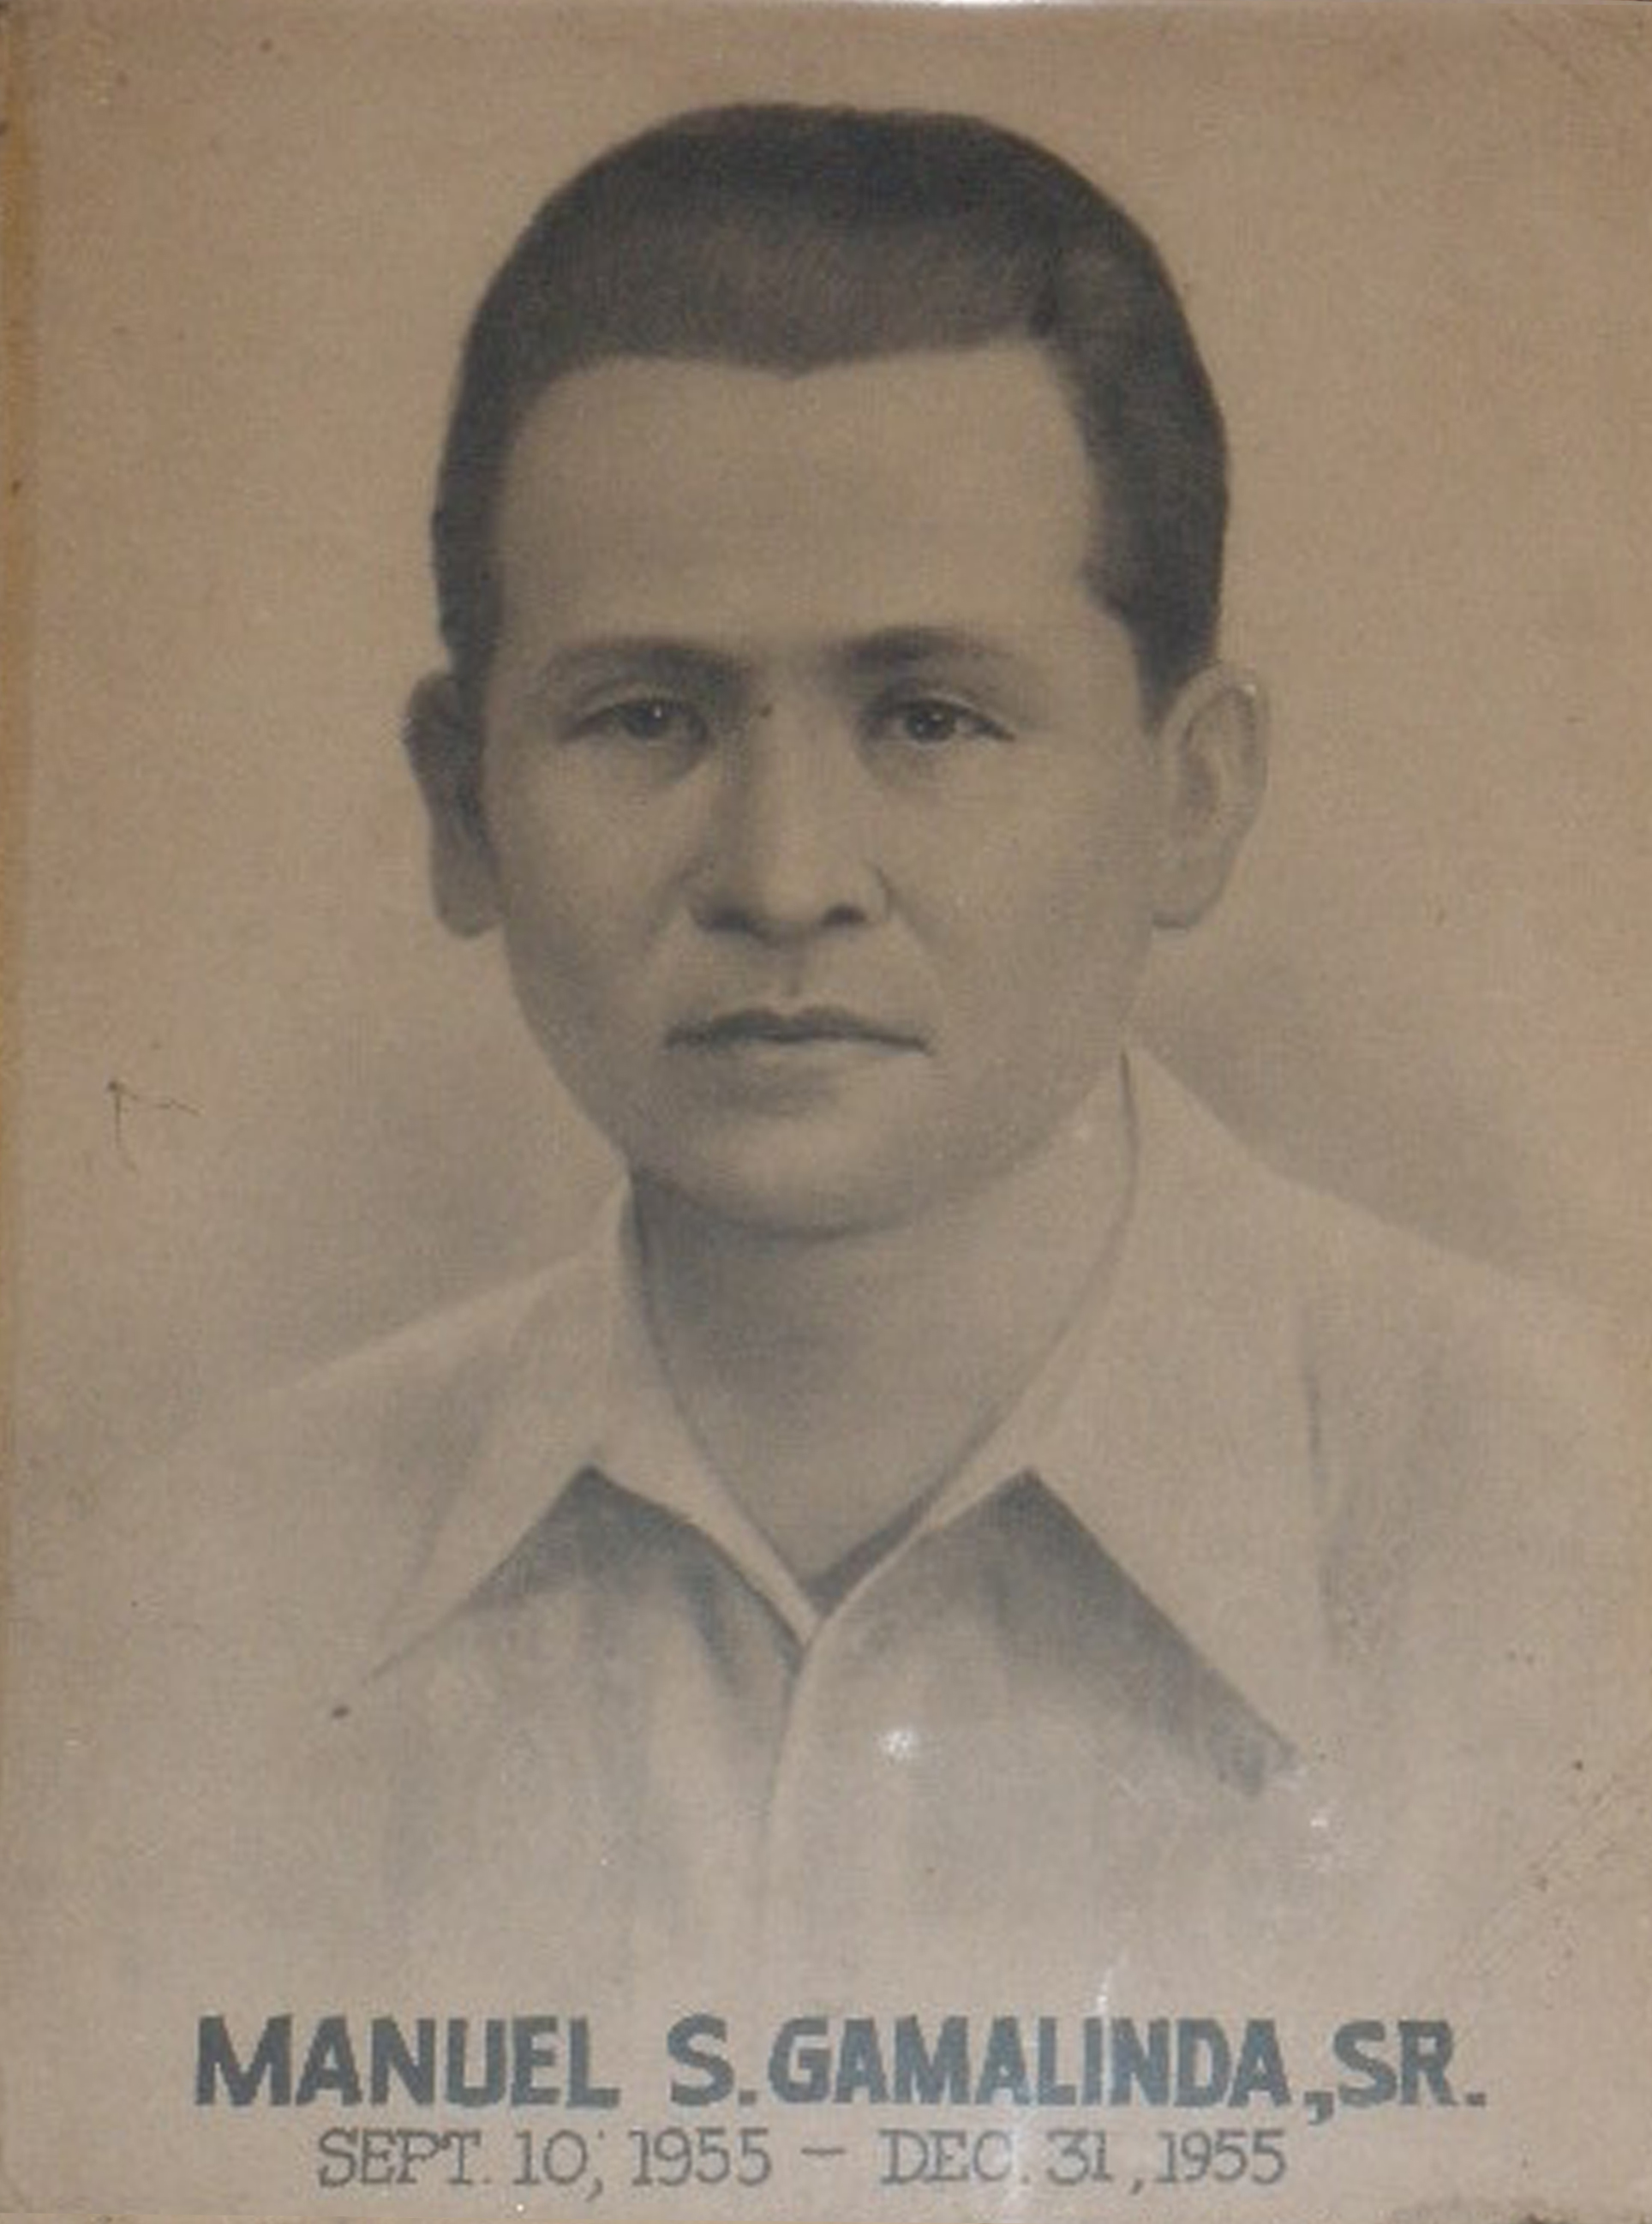 Mayor Manuel Gamalinda Sr. (Sept 10 1955-Dec 31 1955)